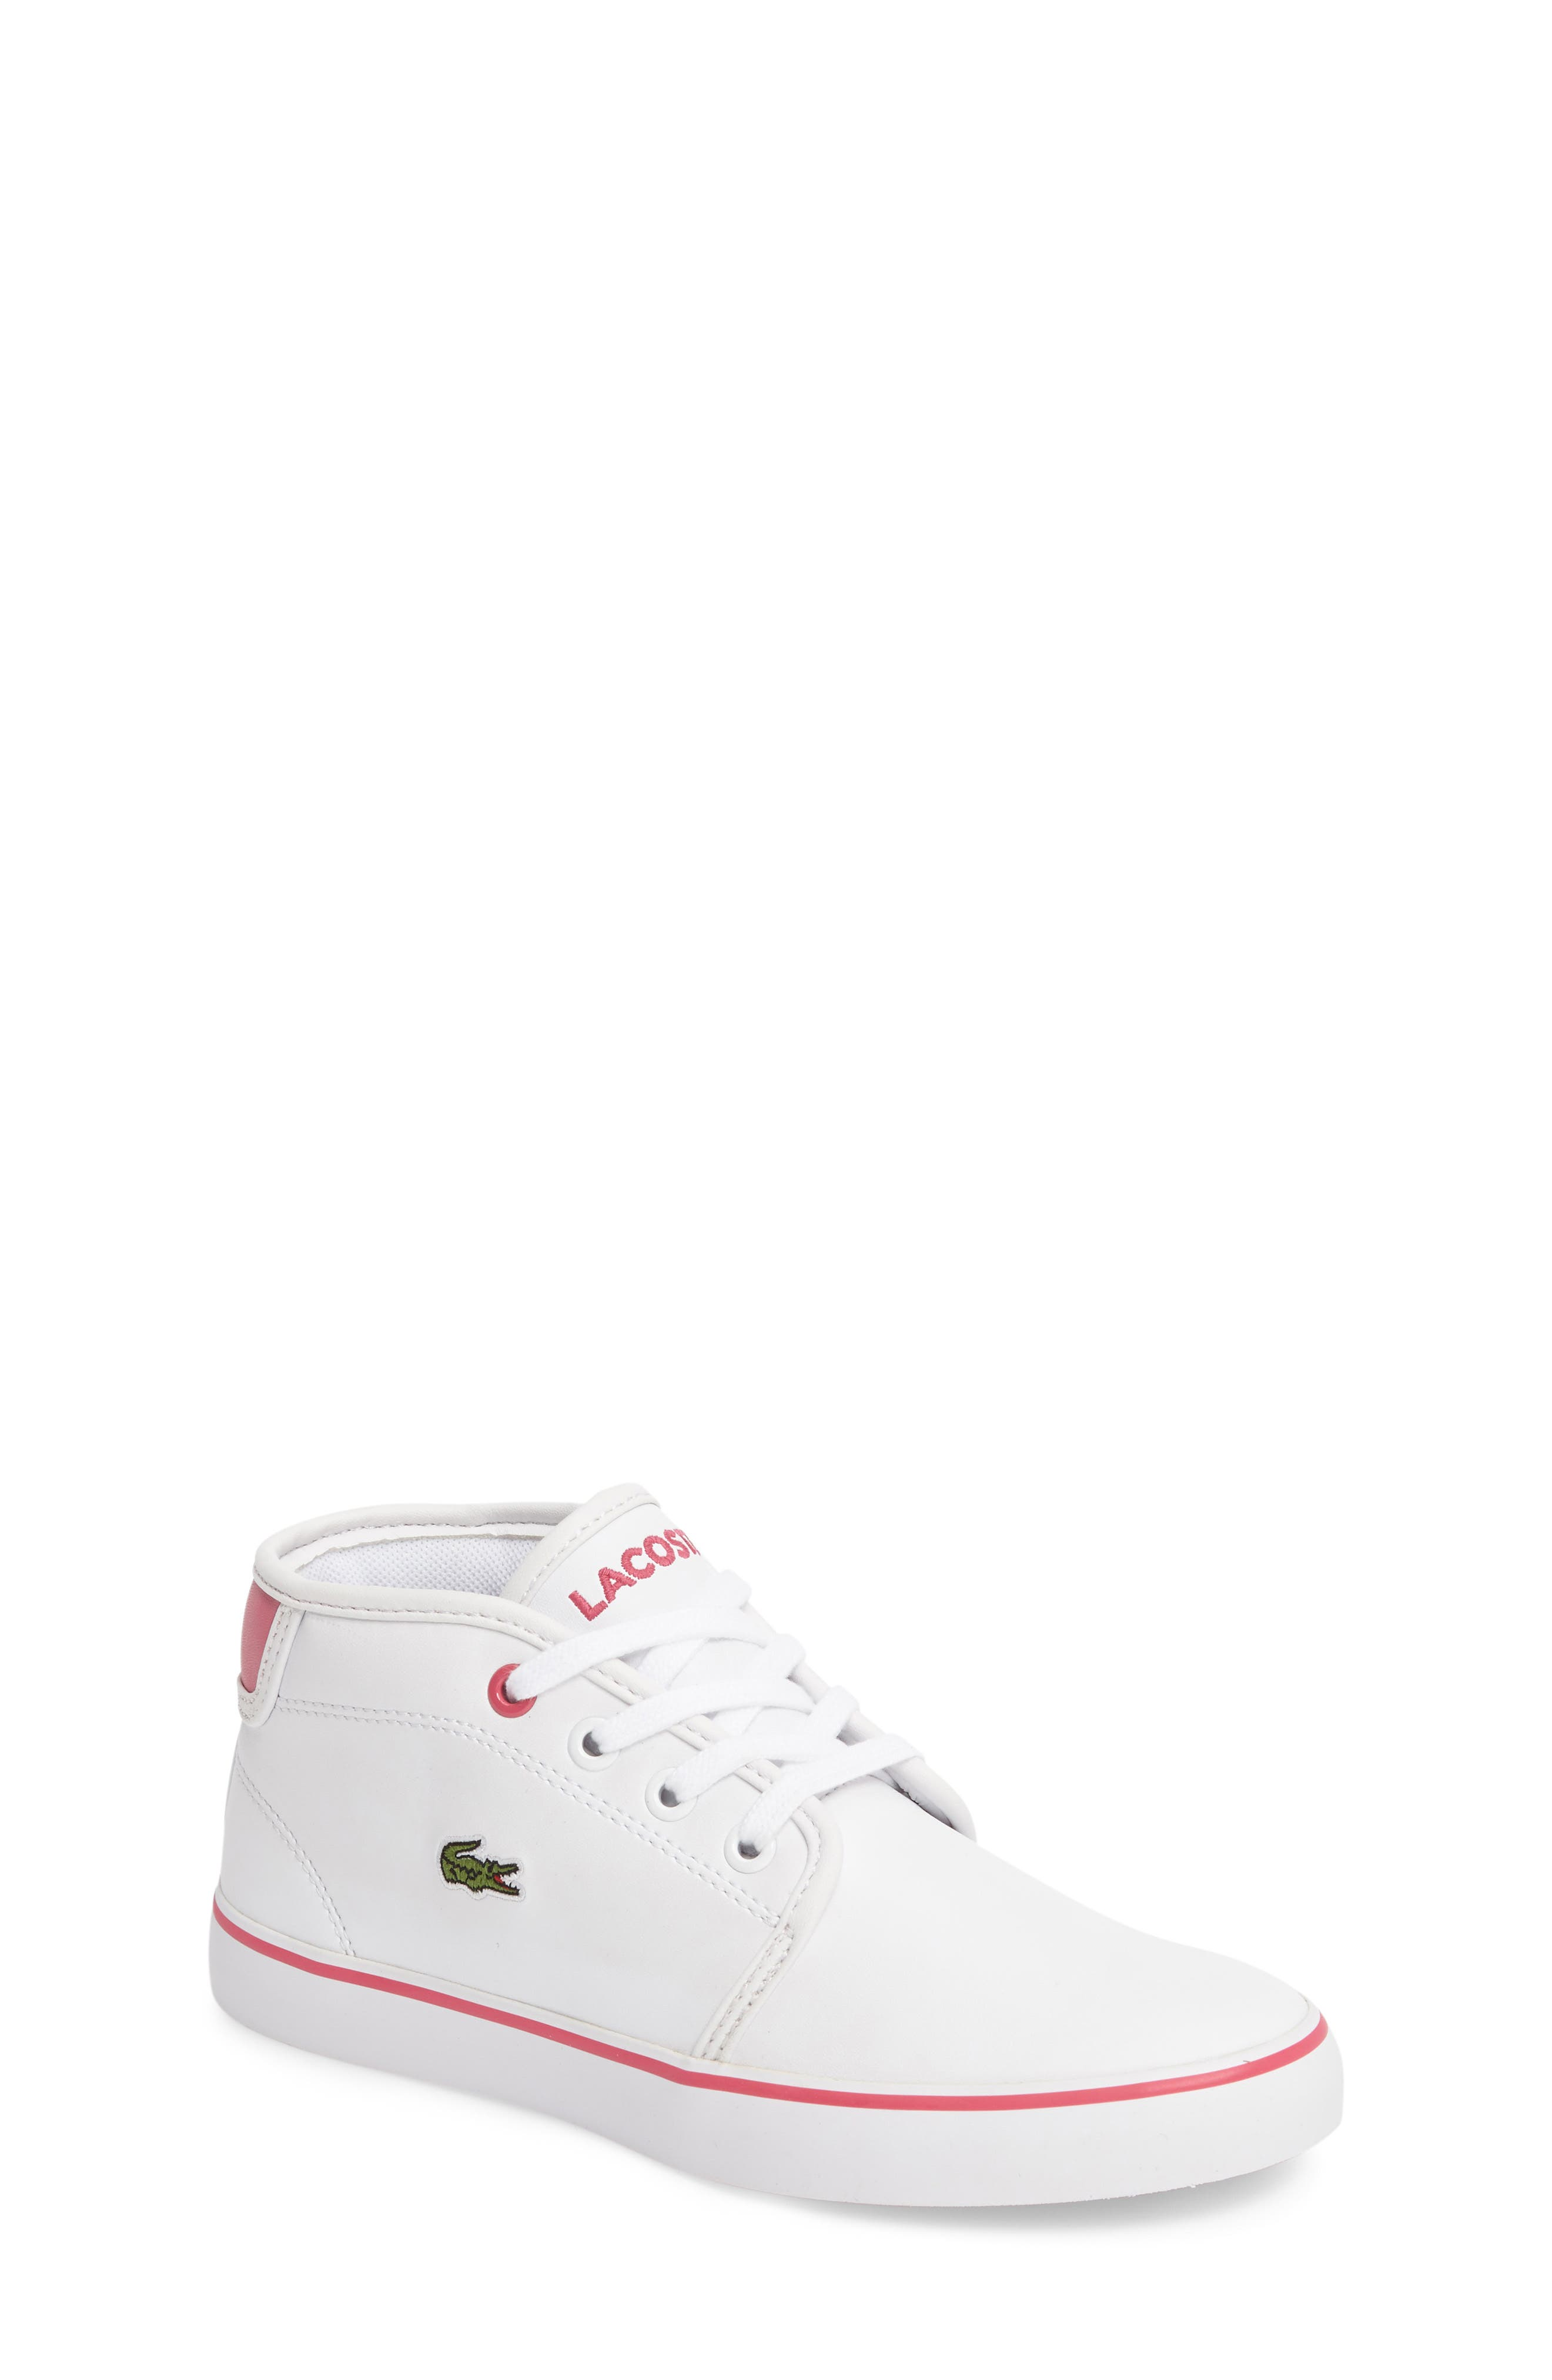 Alternate Image 1 Selected - Lacoste Ampthill Mid-Top Sneaker (Baby, Walker, Toddler & Little Kid)